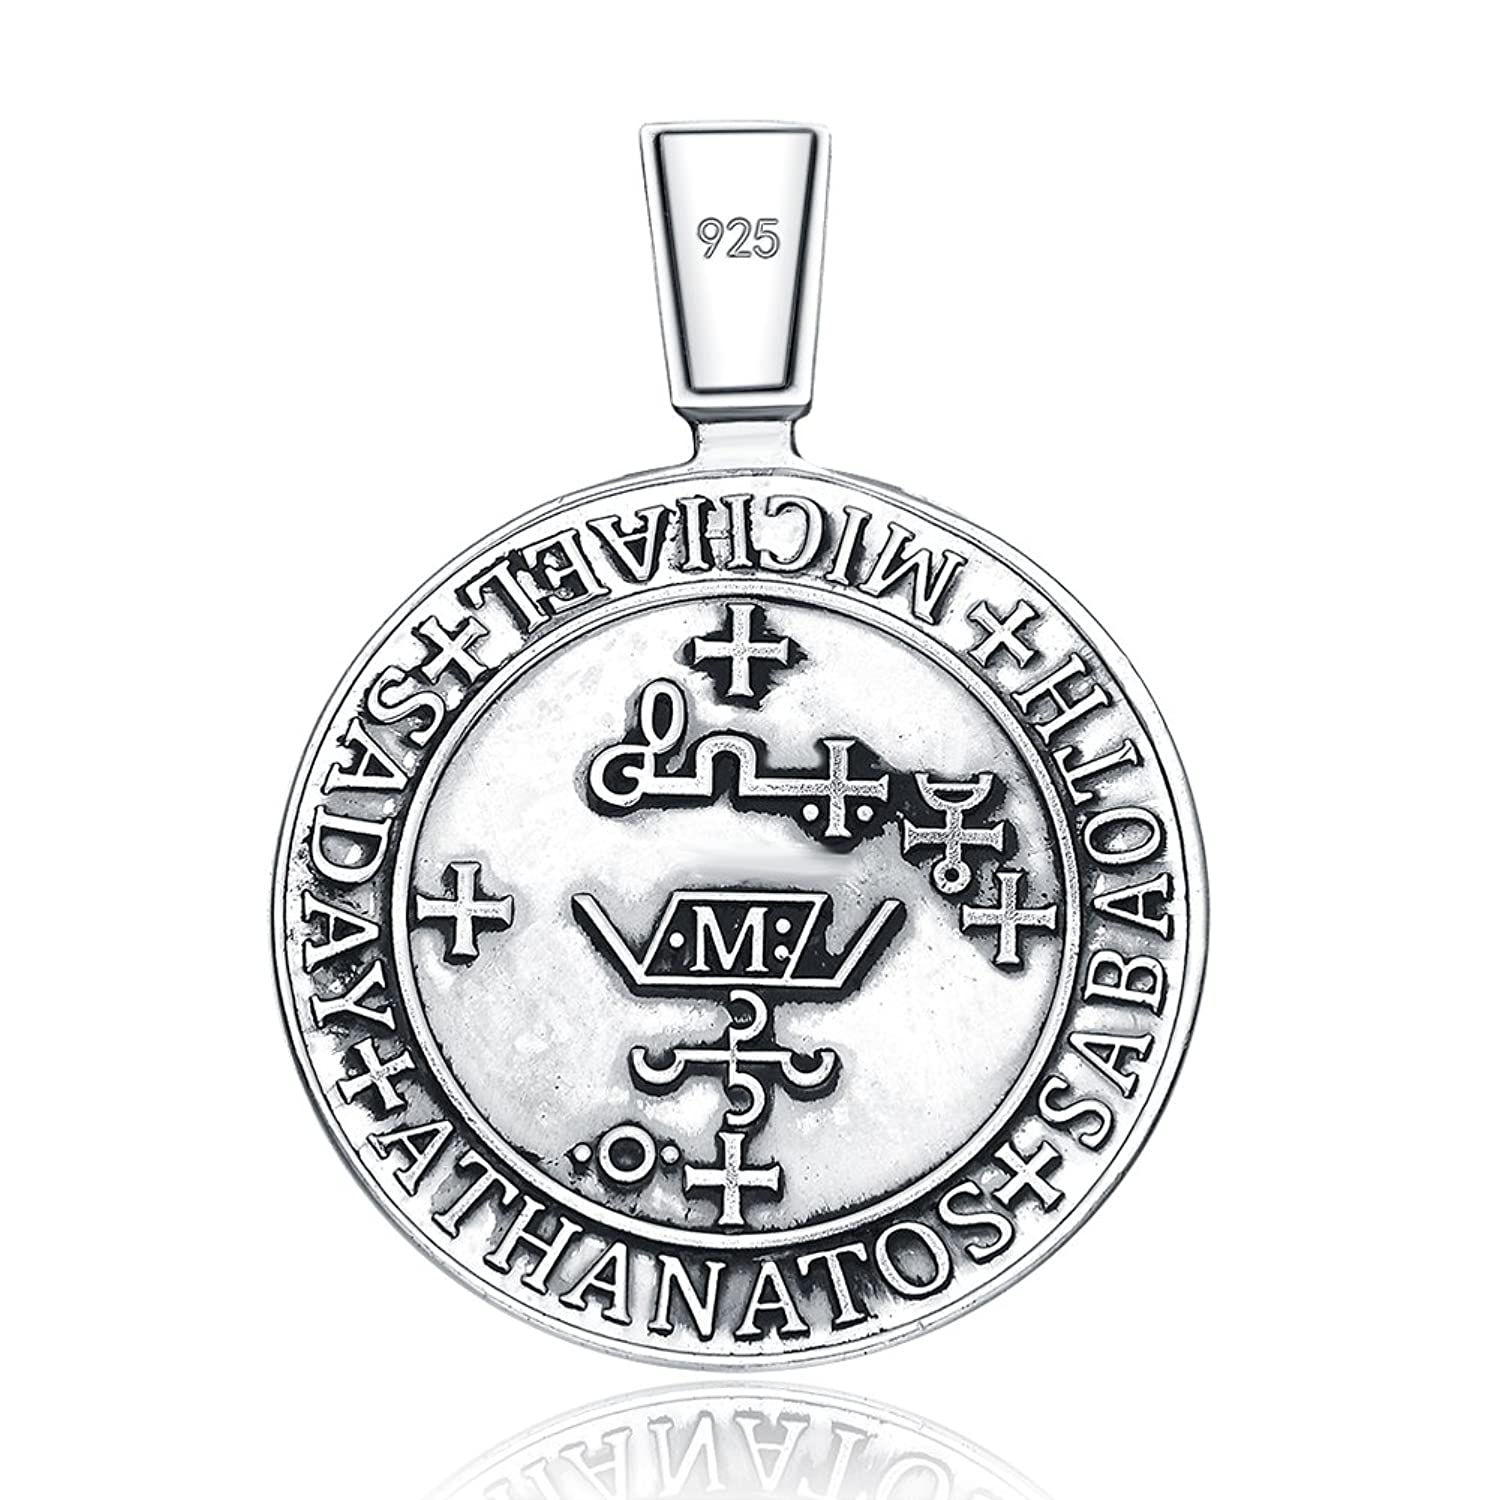 pendant me orhodox in men necklace from necklaces st saint michael charm michaels accessories protect jewelry item archangel russian protection shield